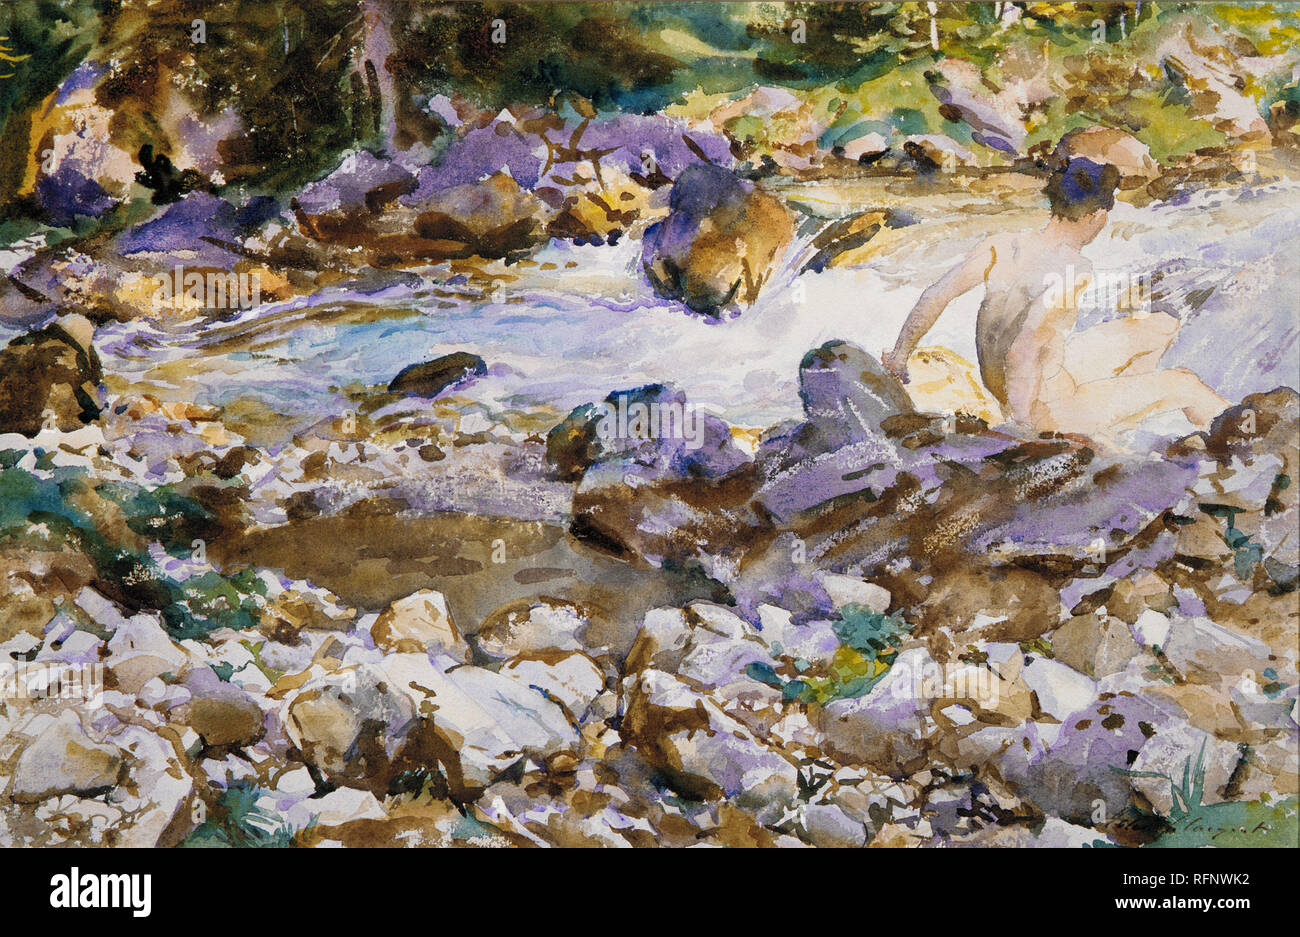 Working Title/Artist: Mountain Stream Department: Am. Paintings / Sculpture Culture/Period/Location:  HB/TOA Date Code:  Working Date: ca. 1912-14 scanned for collections - Stock Image